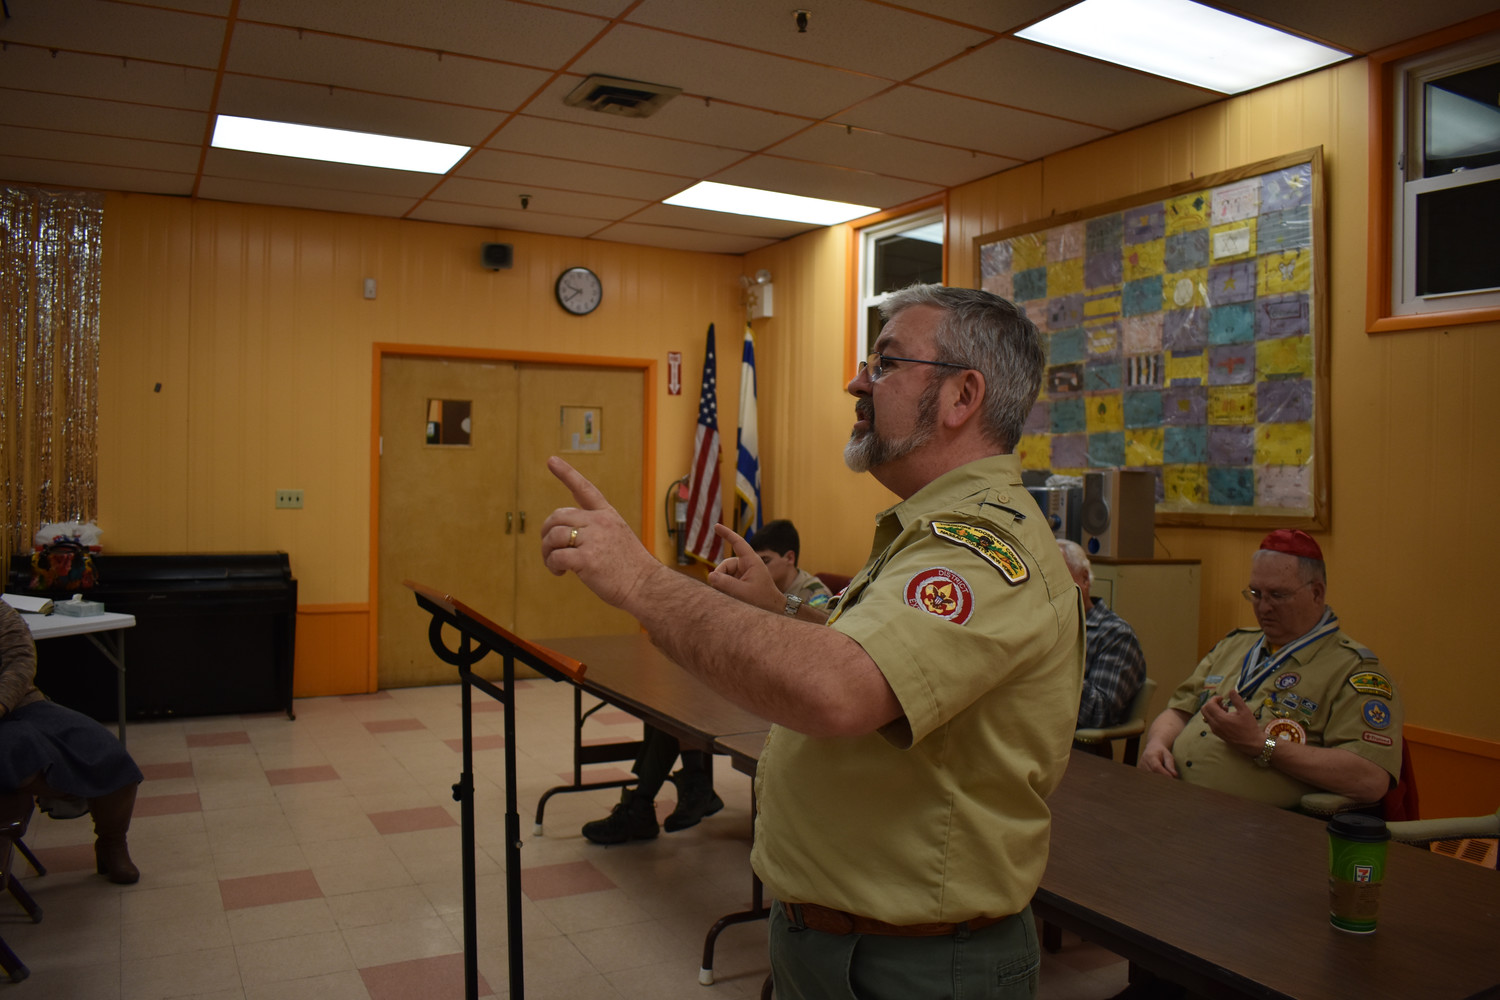 District Executive Bill Scanlan answered parents' questions at the Gural JCC Cub Scout registration meeting on Feb. 13.